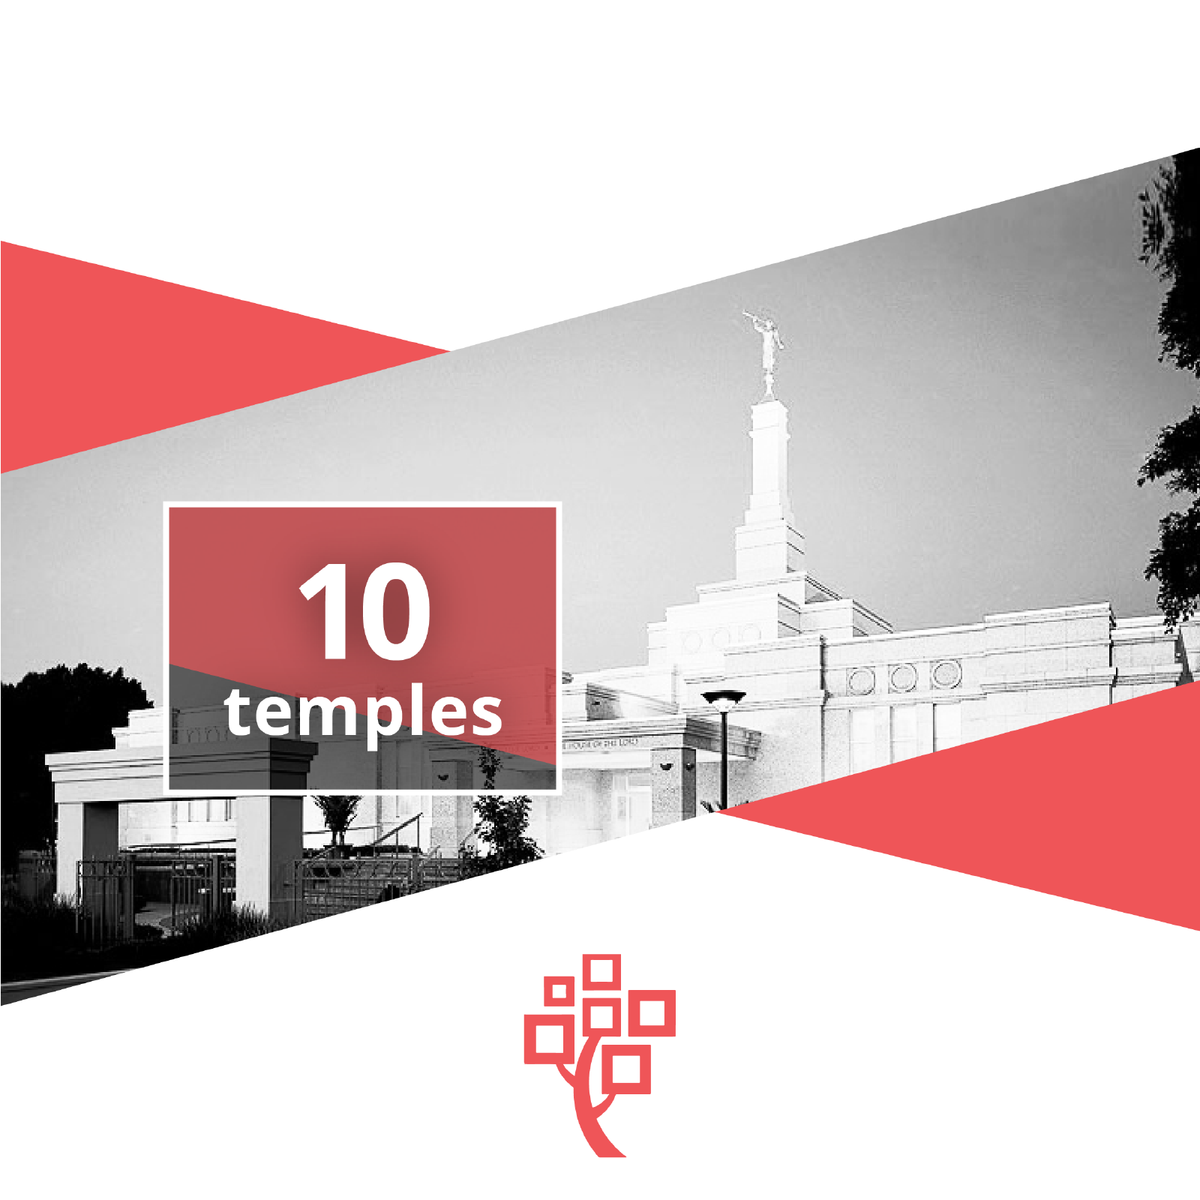 Pacific Area Temples About Us